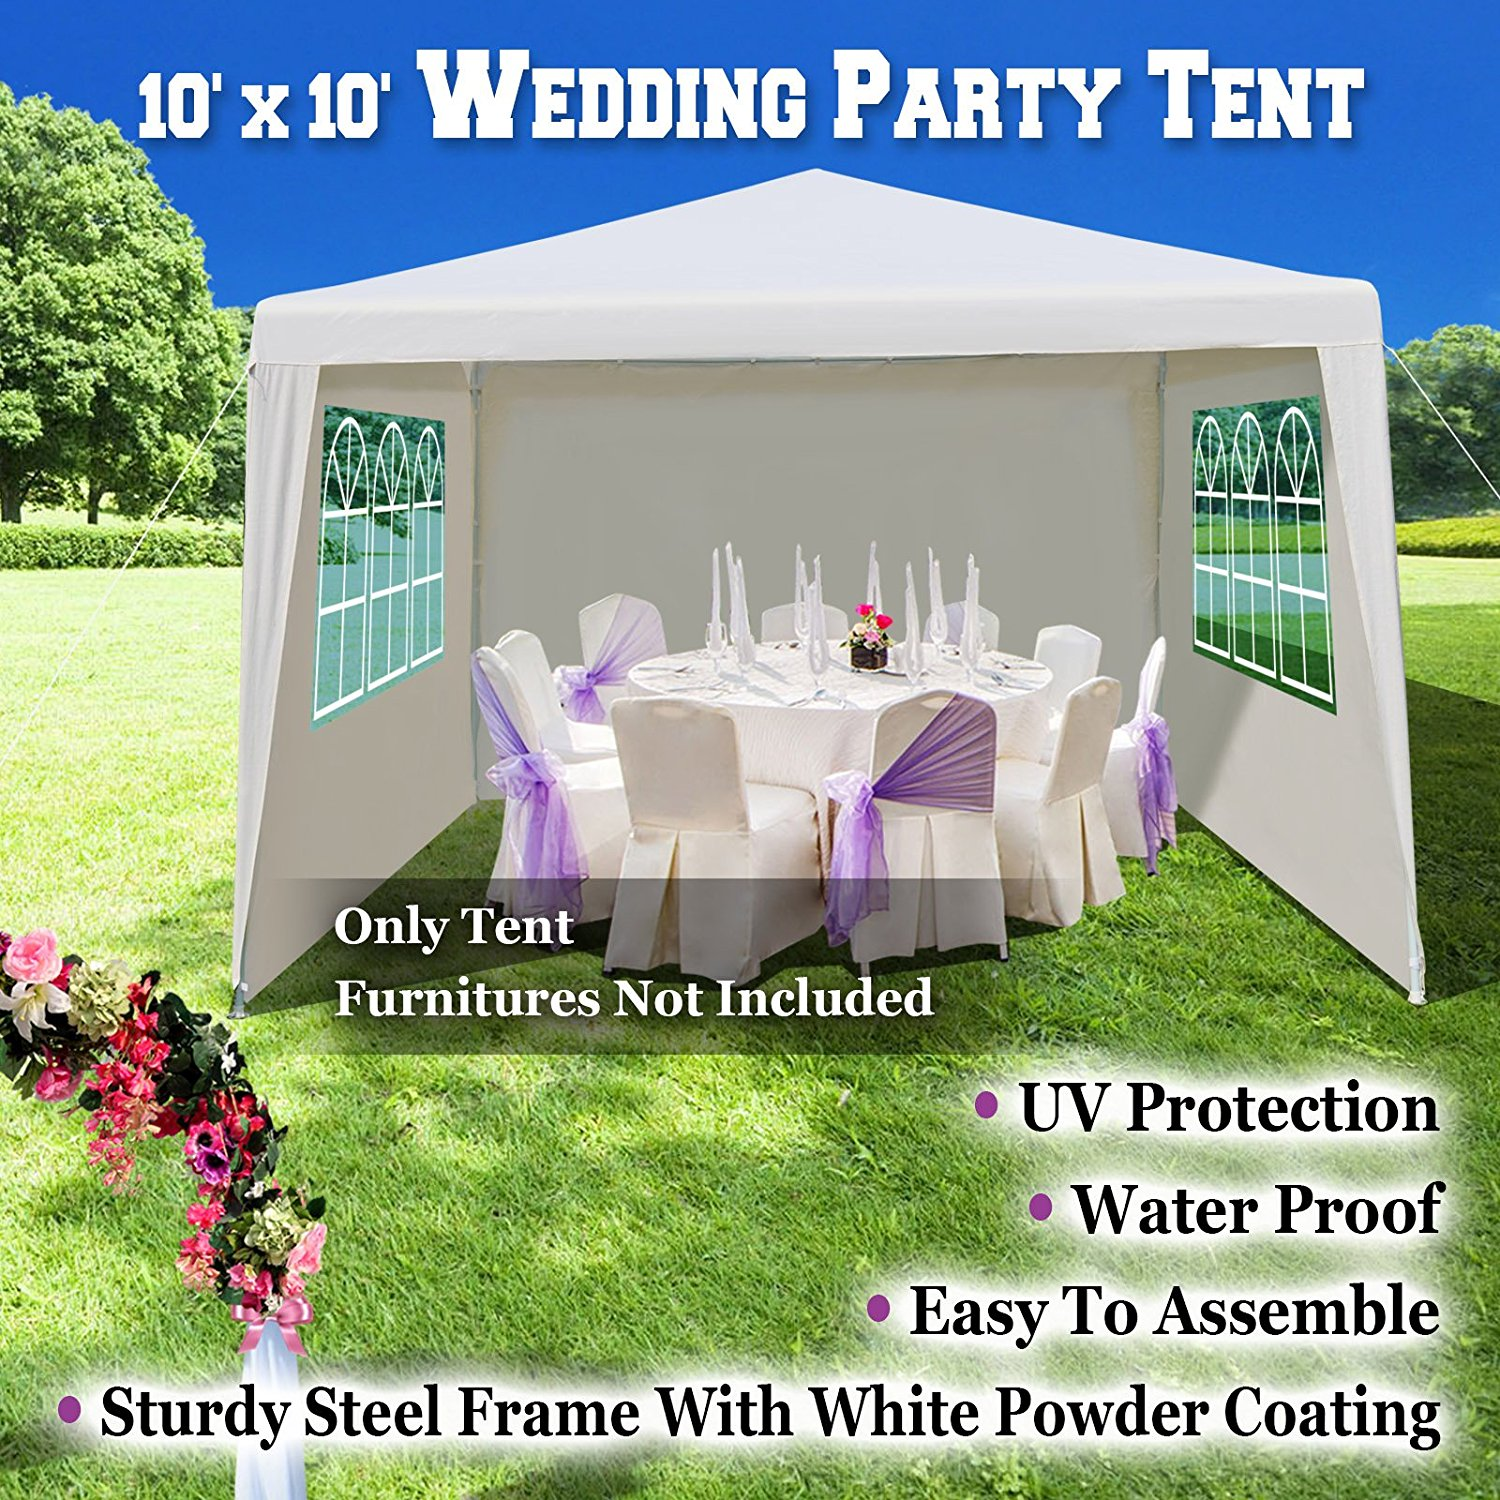 USA Wedding Party Tent 10u0027x10u0027 Gazebo BBQ Pavilion Canopy Cater Events Outdoor Dancing  sc 1 st  Walmart & USA Wedding Party Tent 10u0027x10u0027 Gazebo BBQ Pavilion Canopy Cater ...